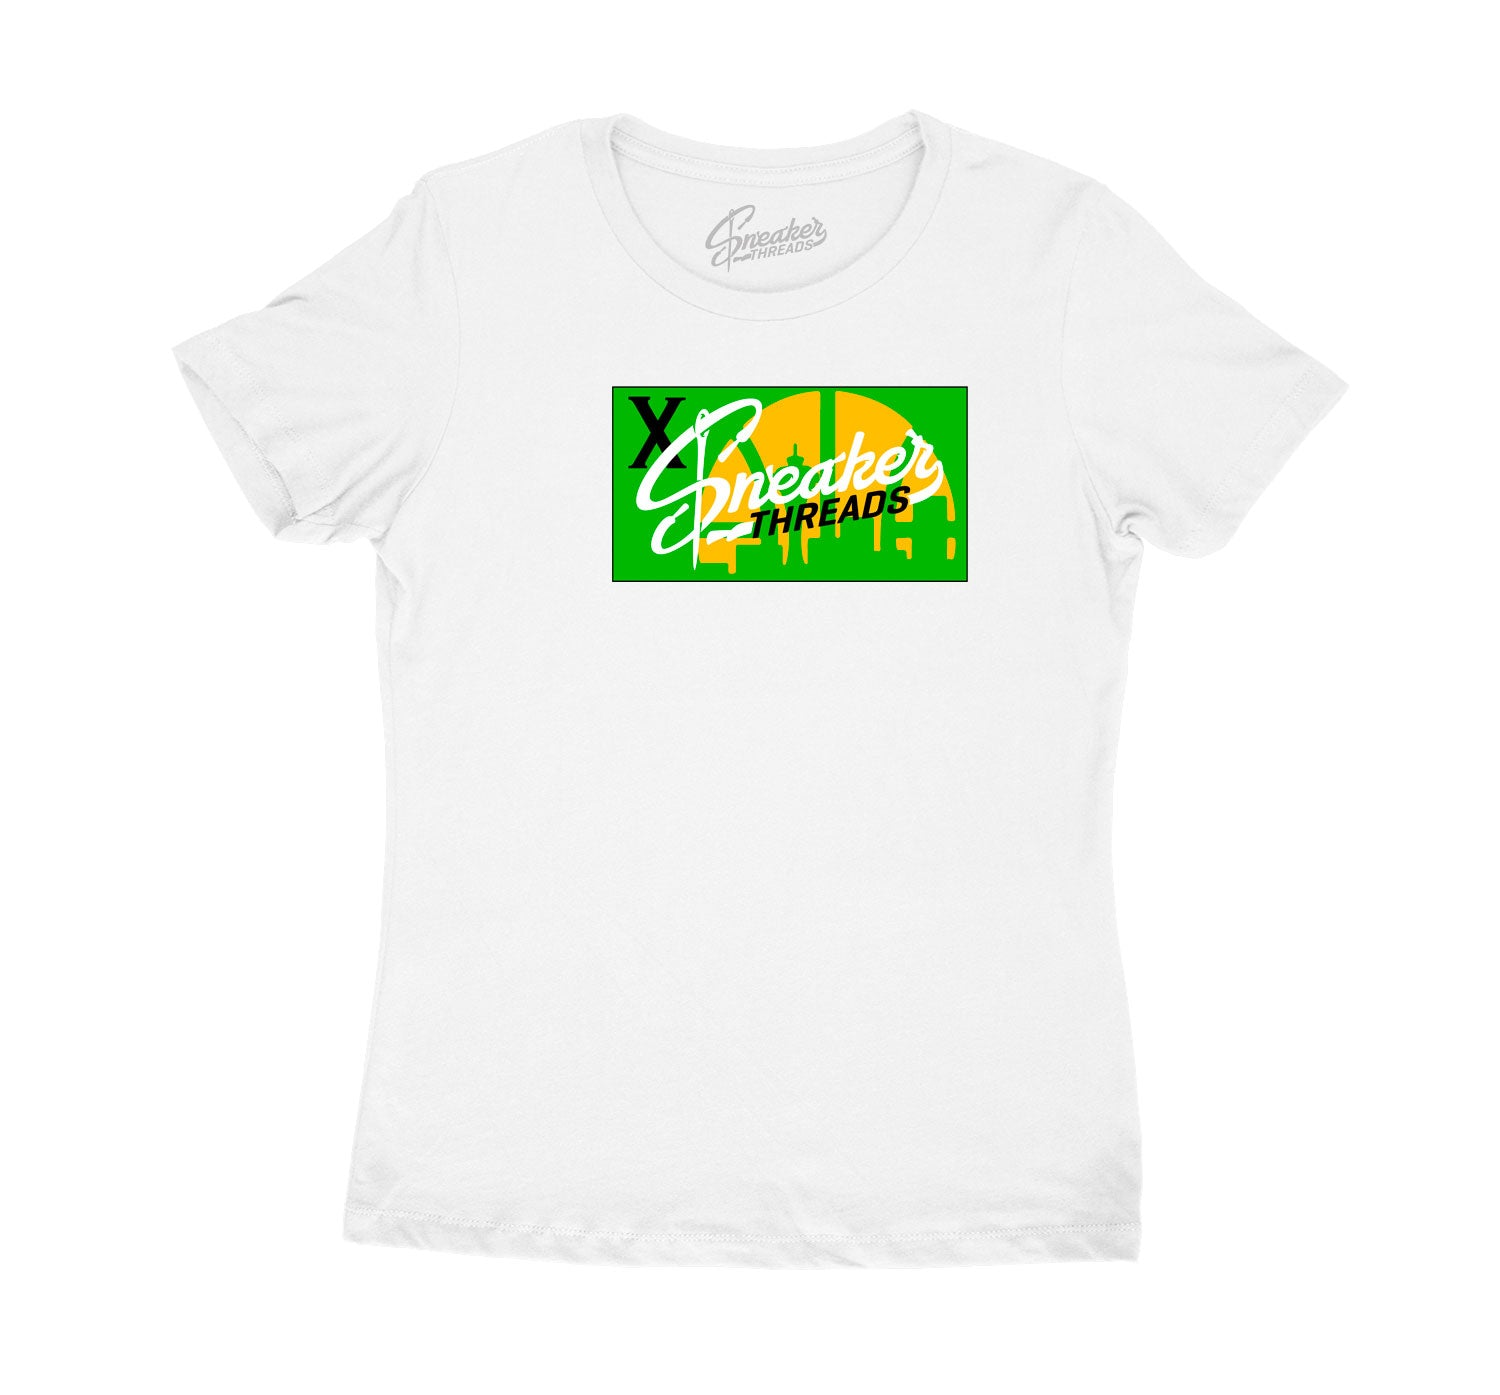 ladies shirt created to match the Seattle 10 sneakers perfect